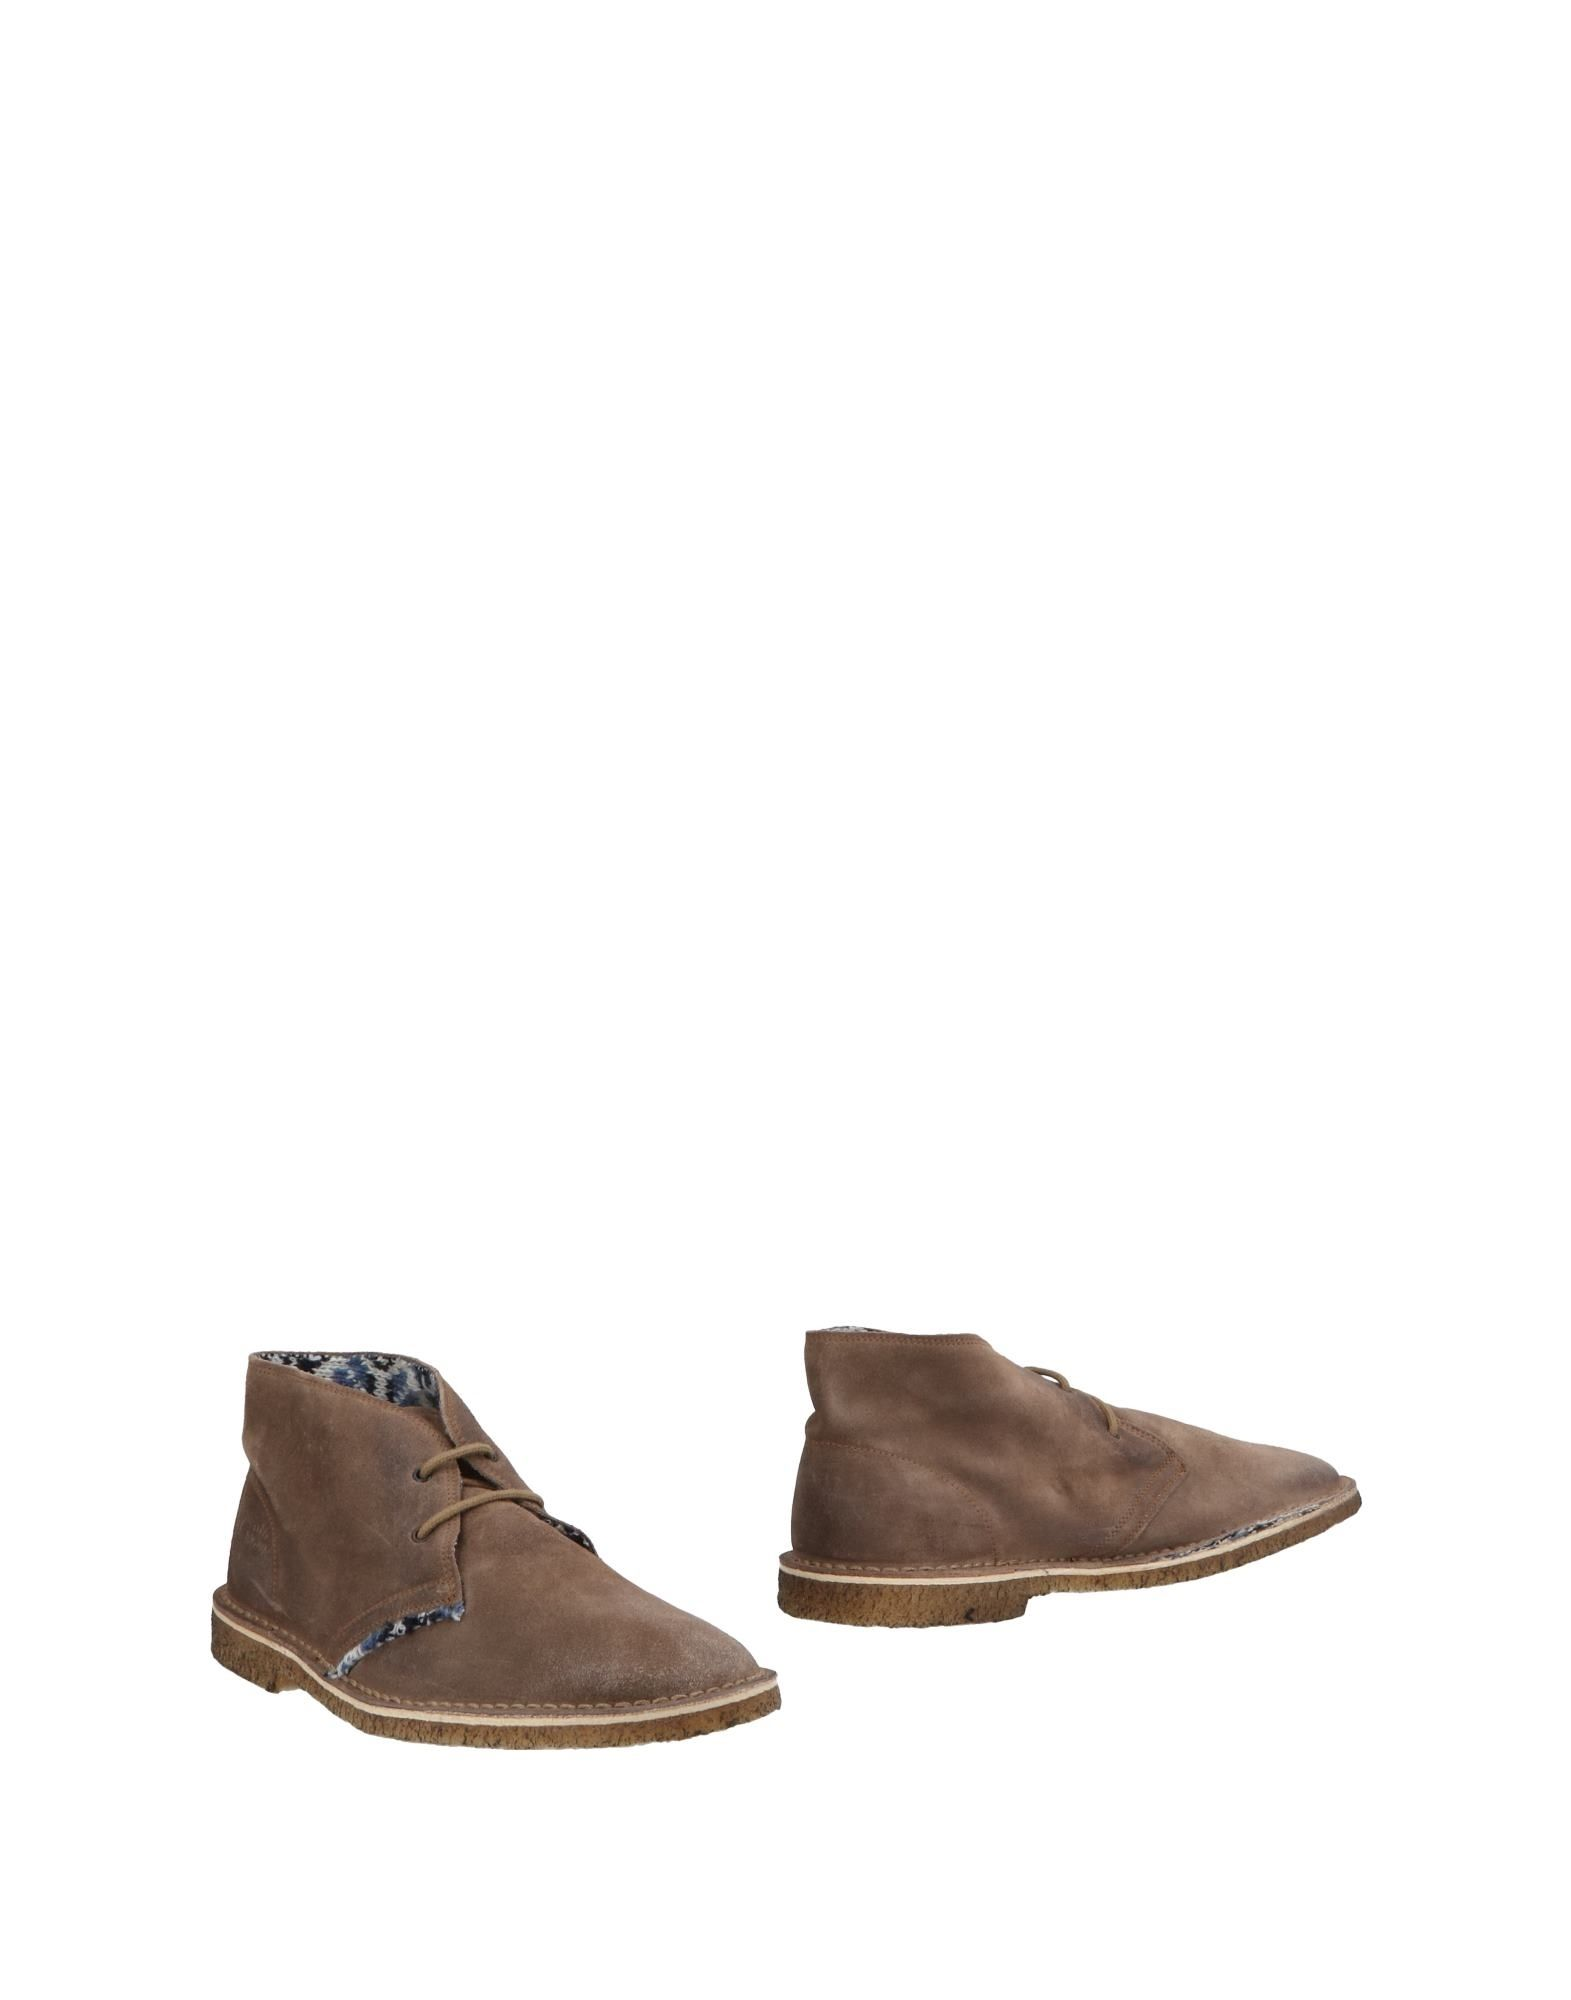 LE CROWN Boots in Dove Grey